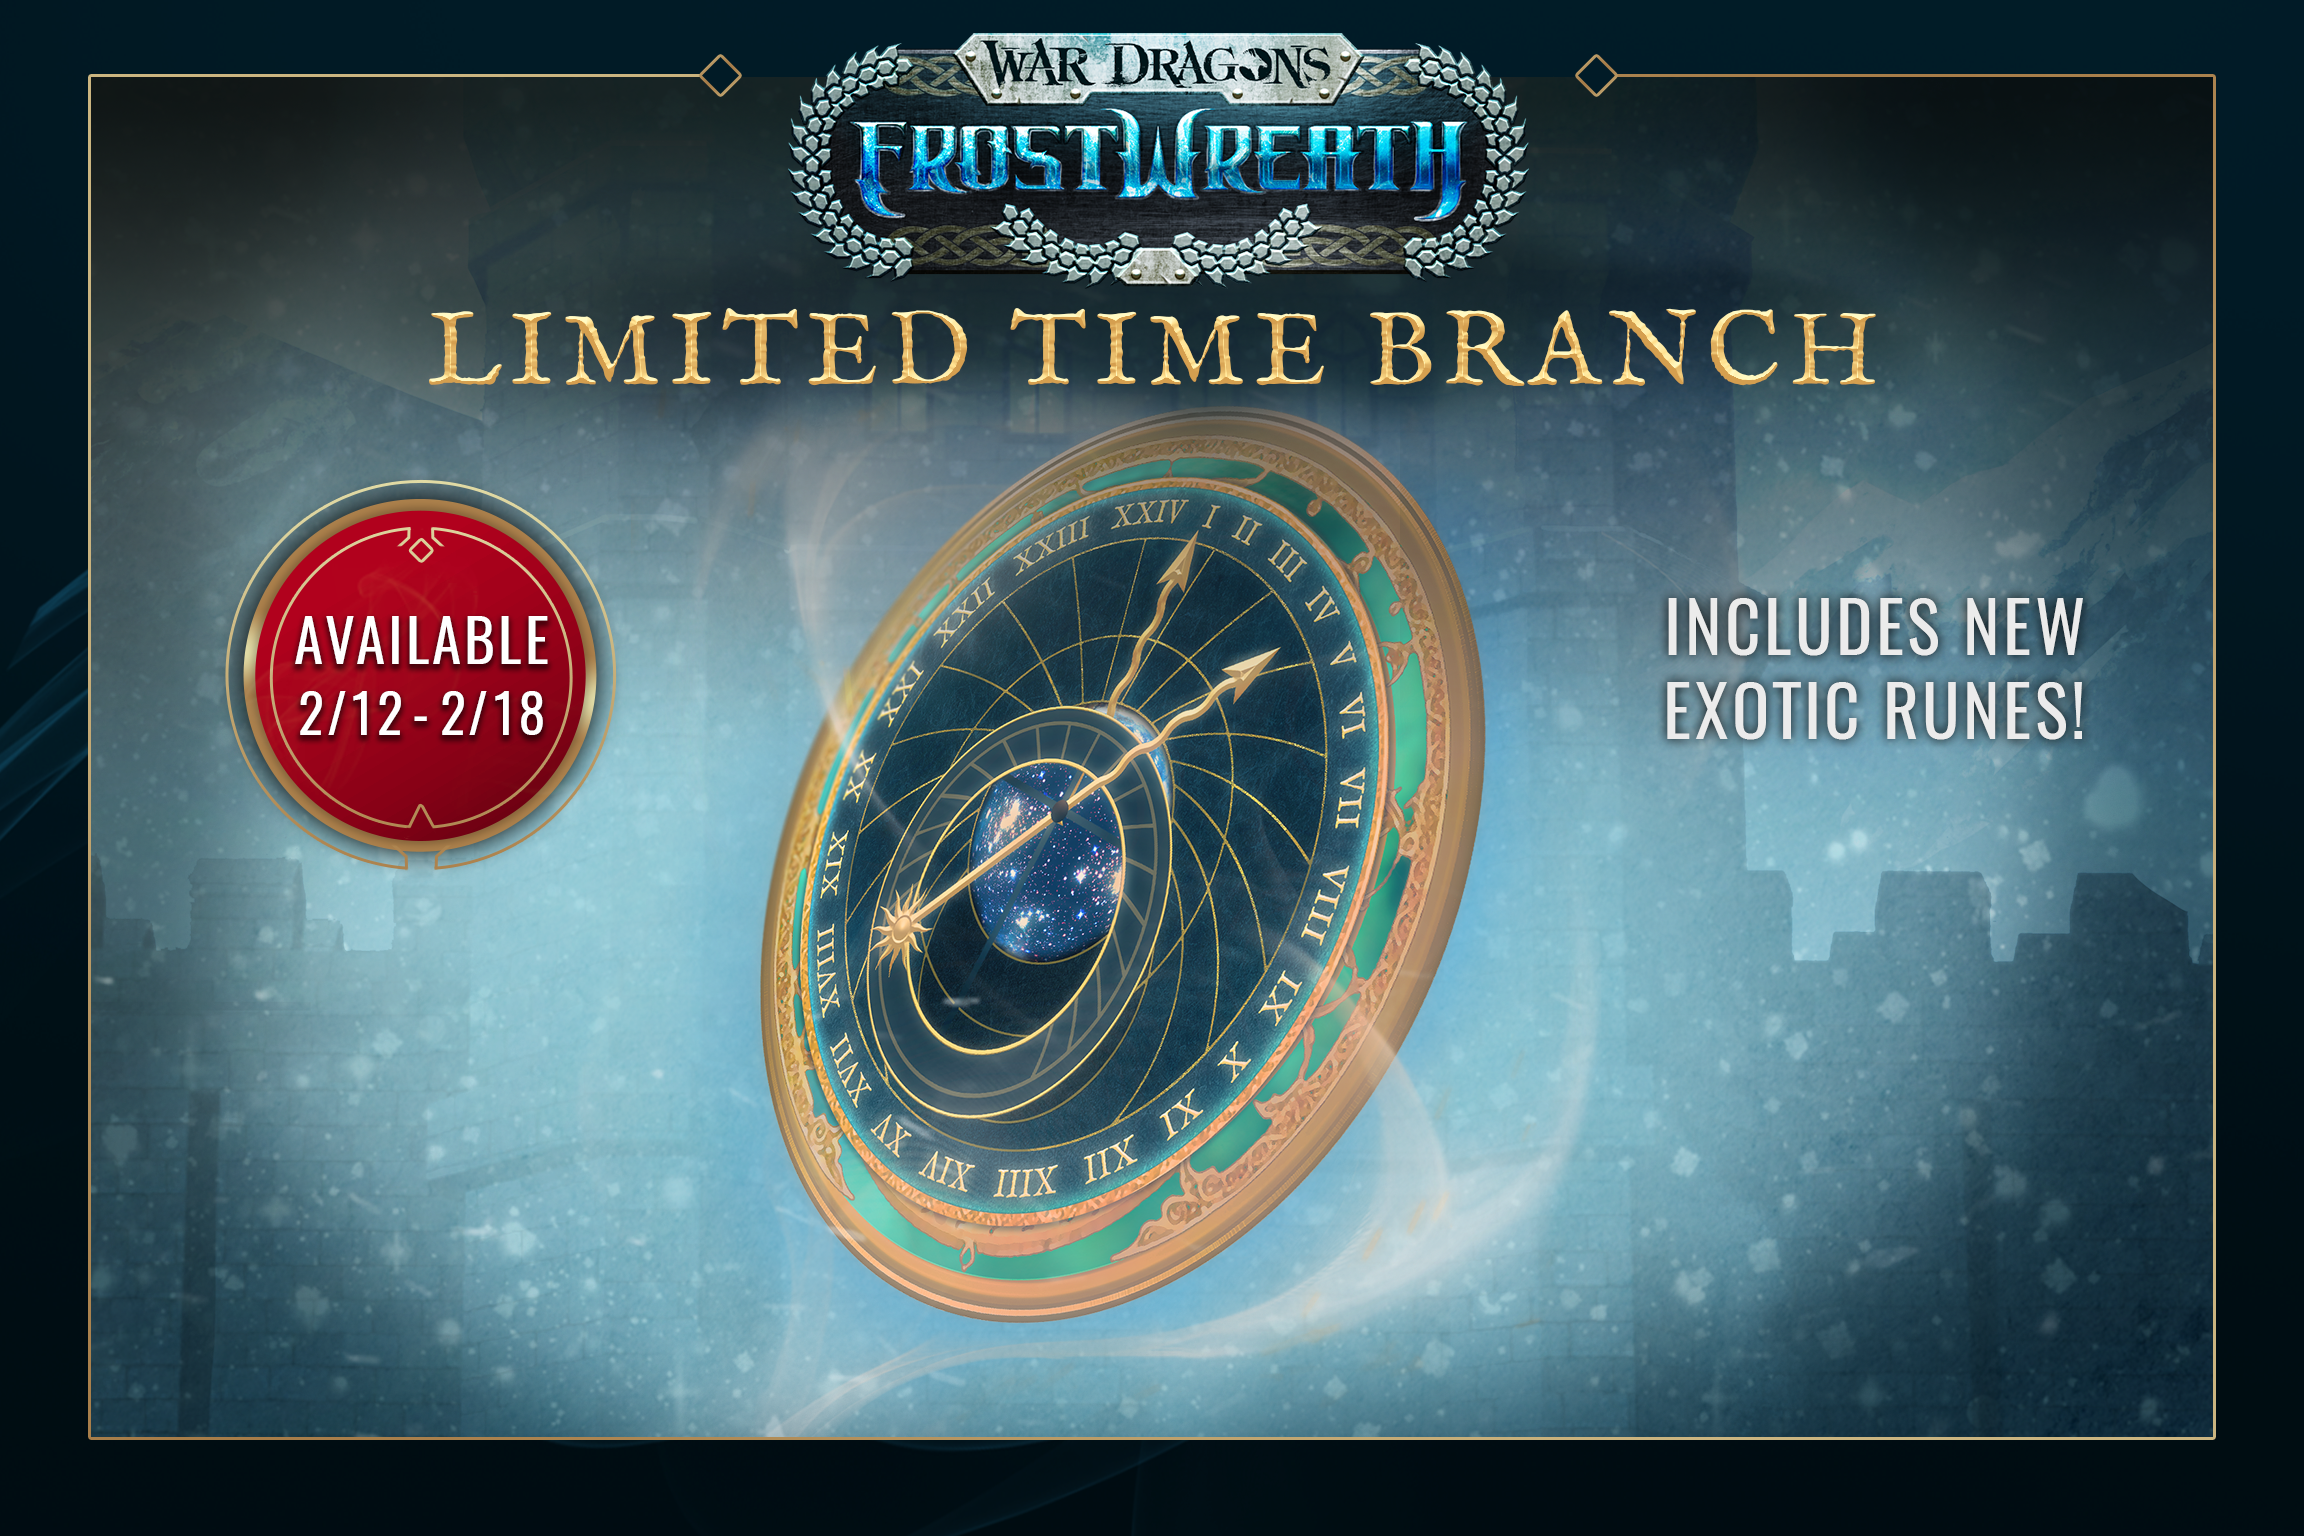 War Dragons - Frostwreath Limited Time Branch